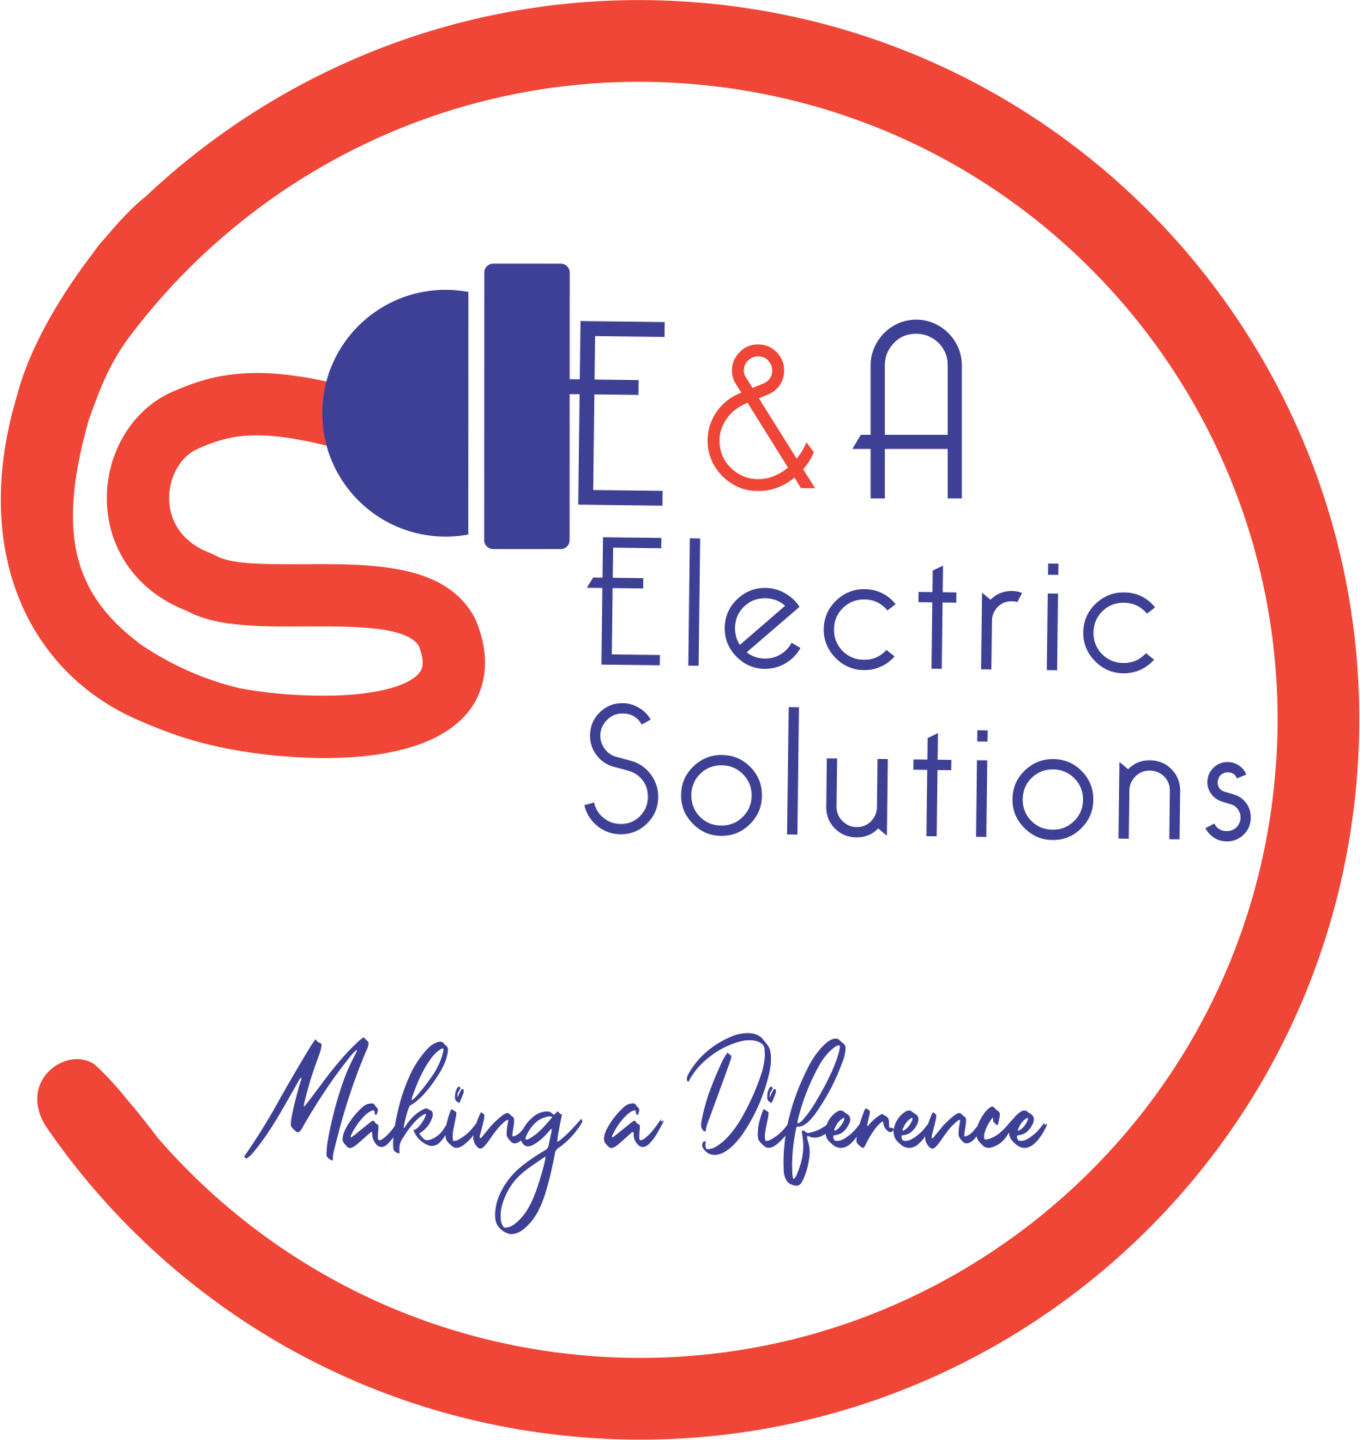 E&A Electric Solutions Inc